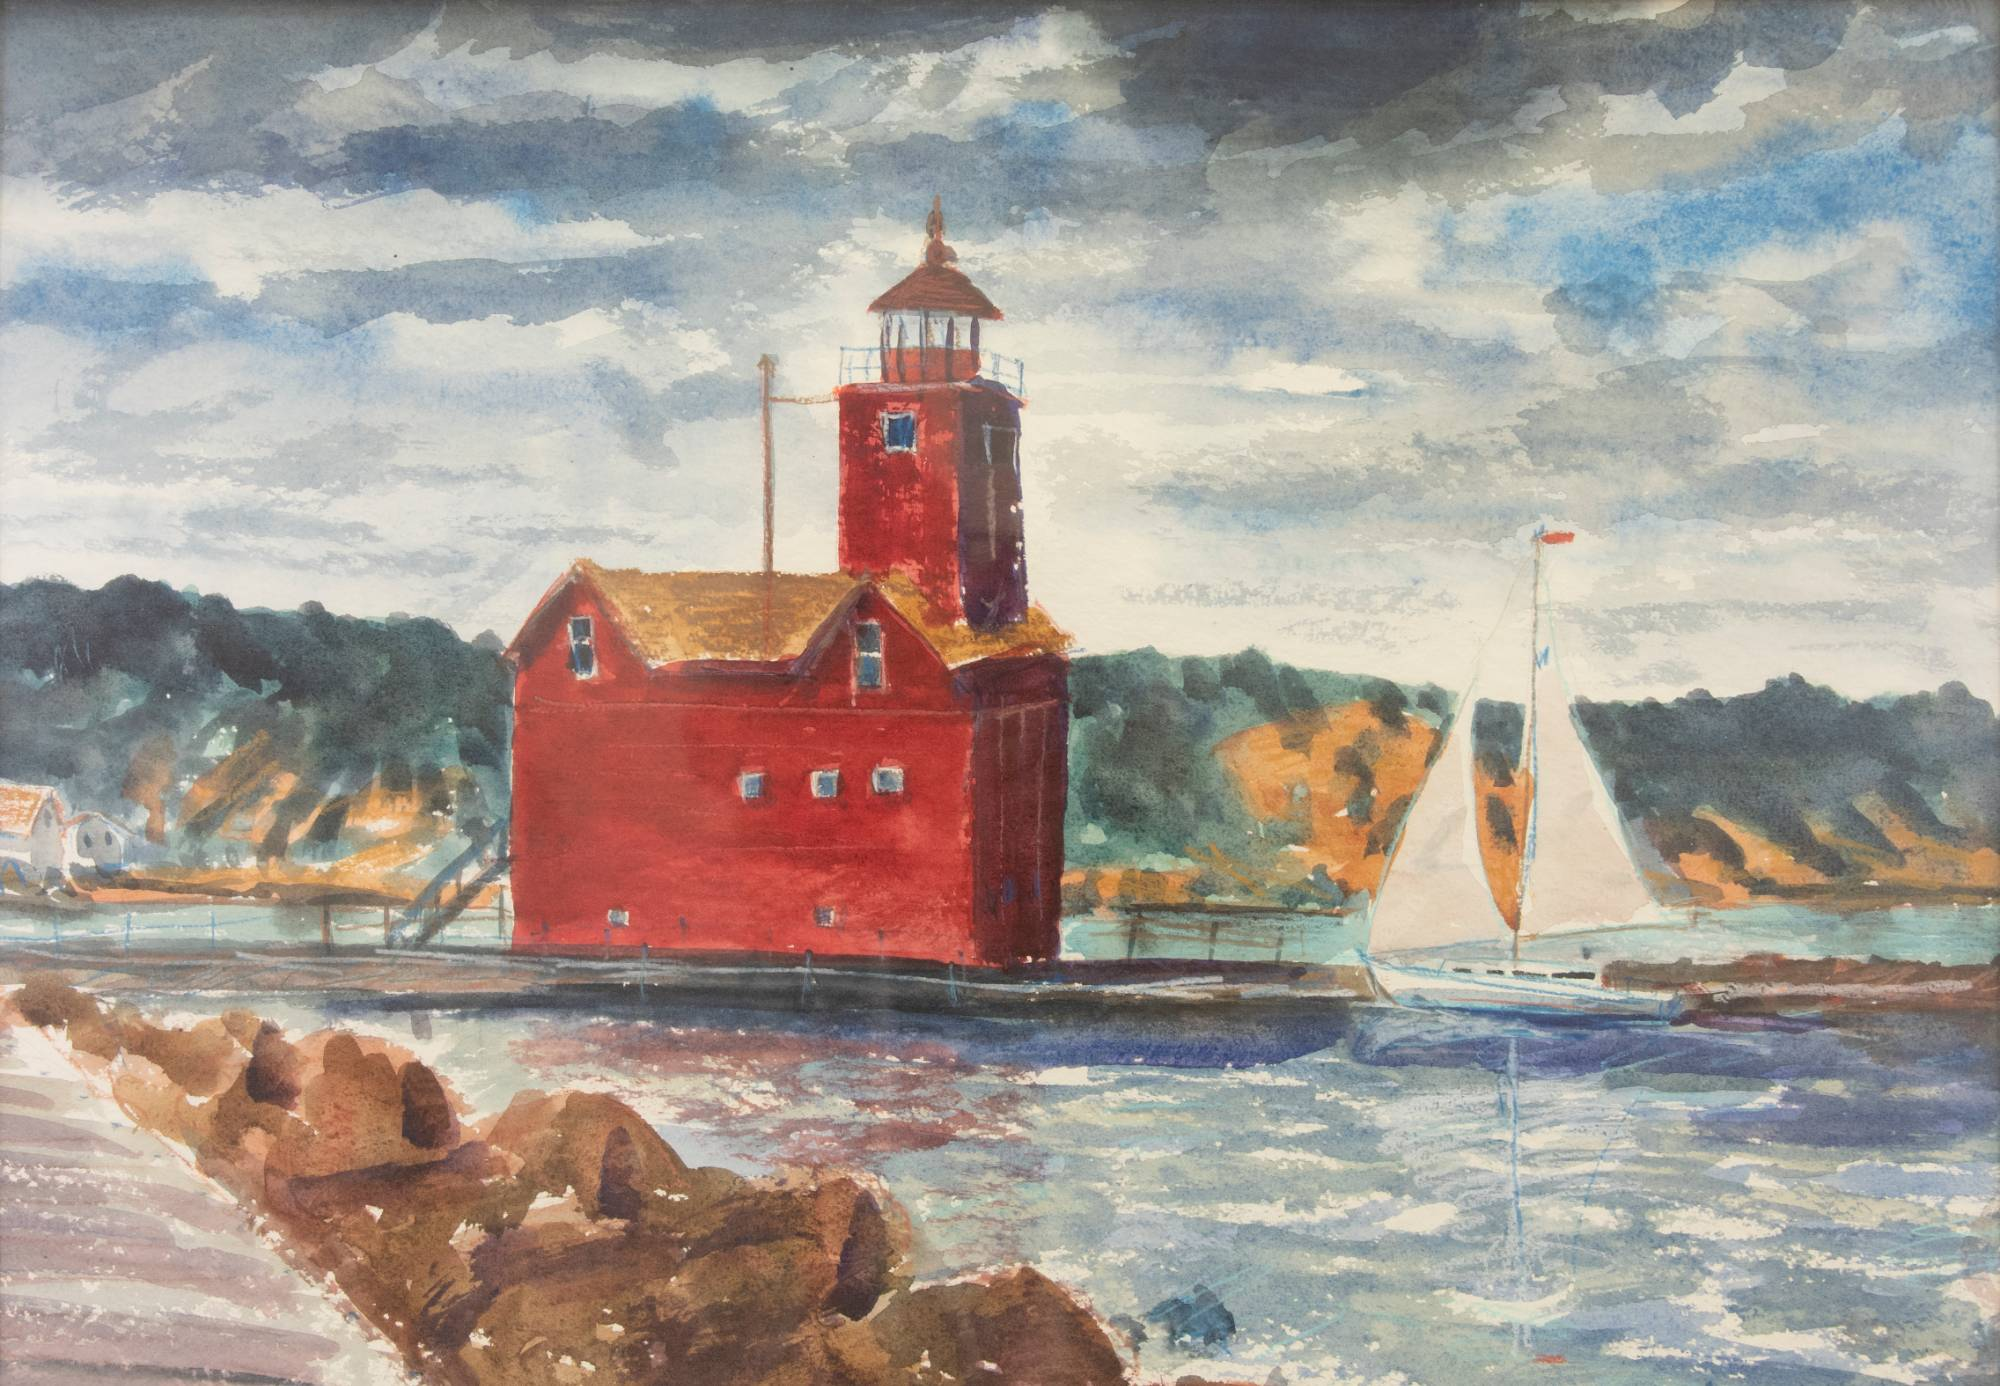 An art piece with a red lighthouse and a sailboat in the water.